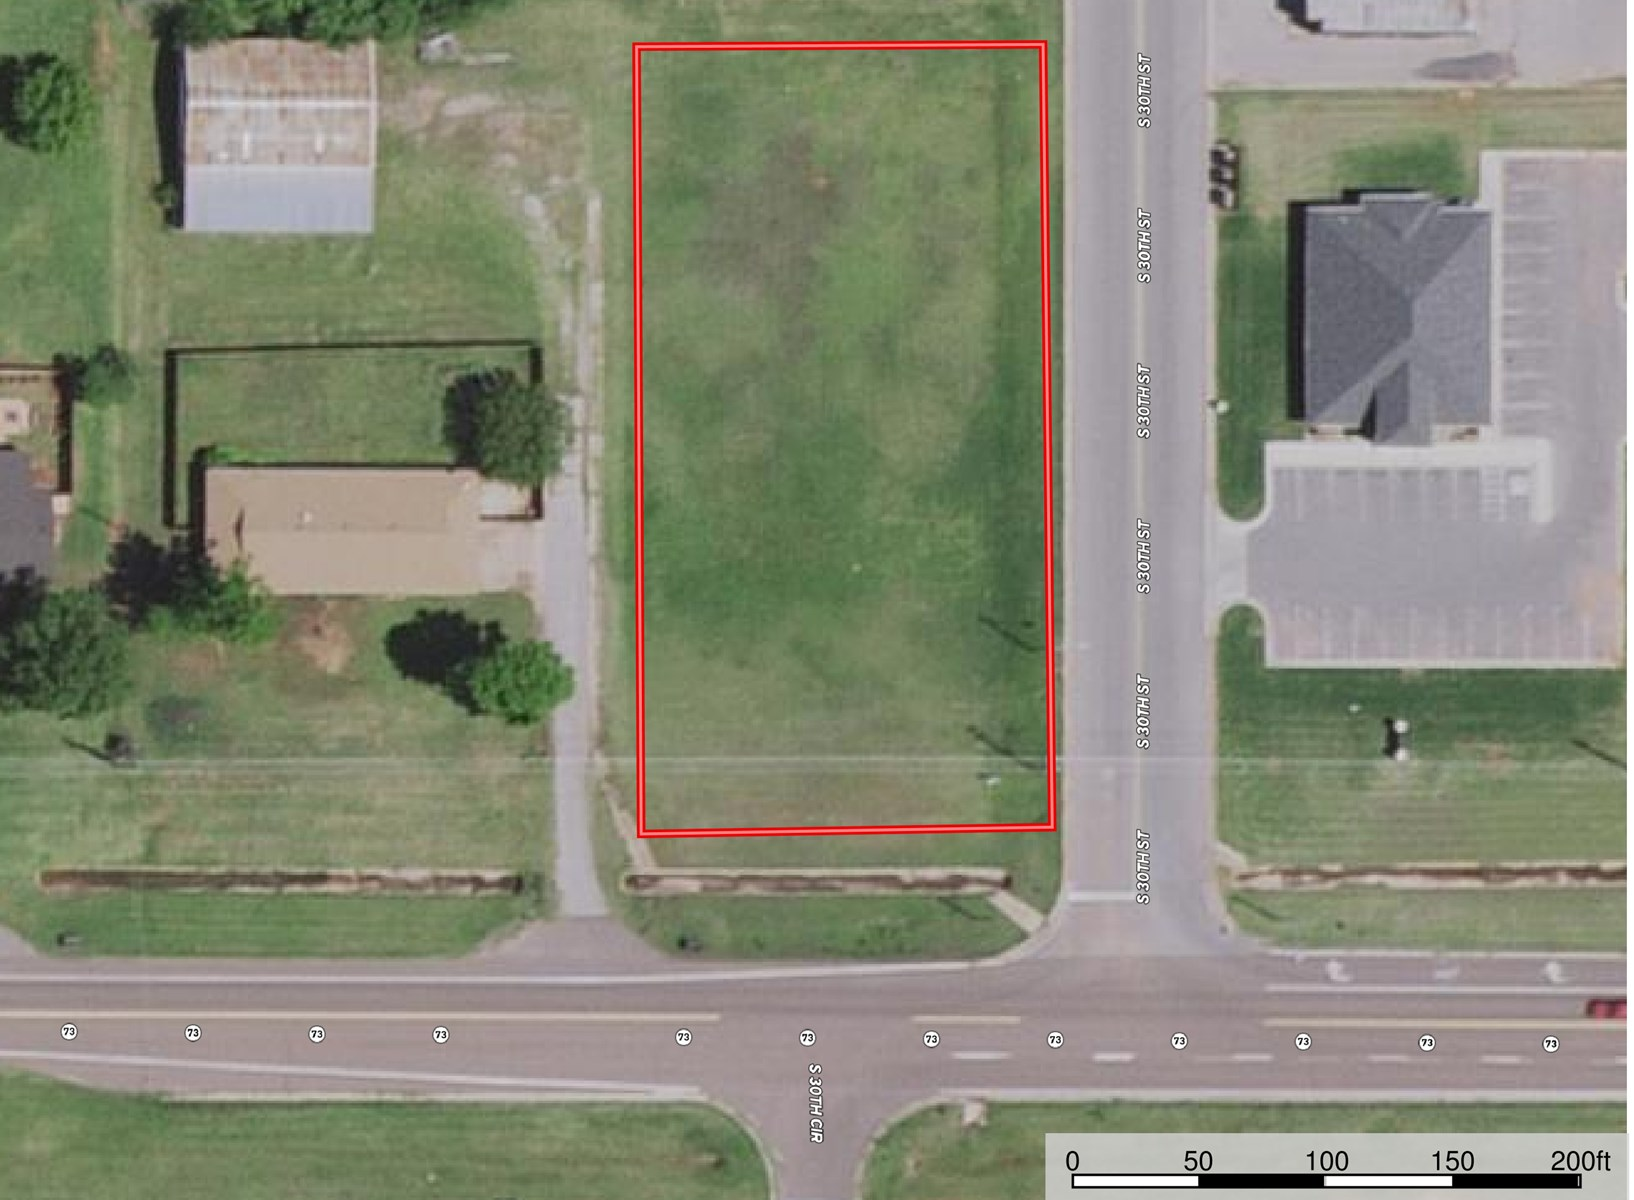 Commercial Land for Sale in Clinton, OK